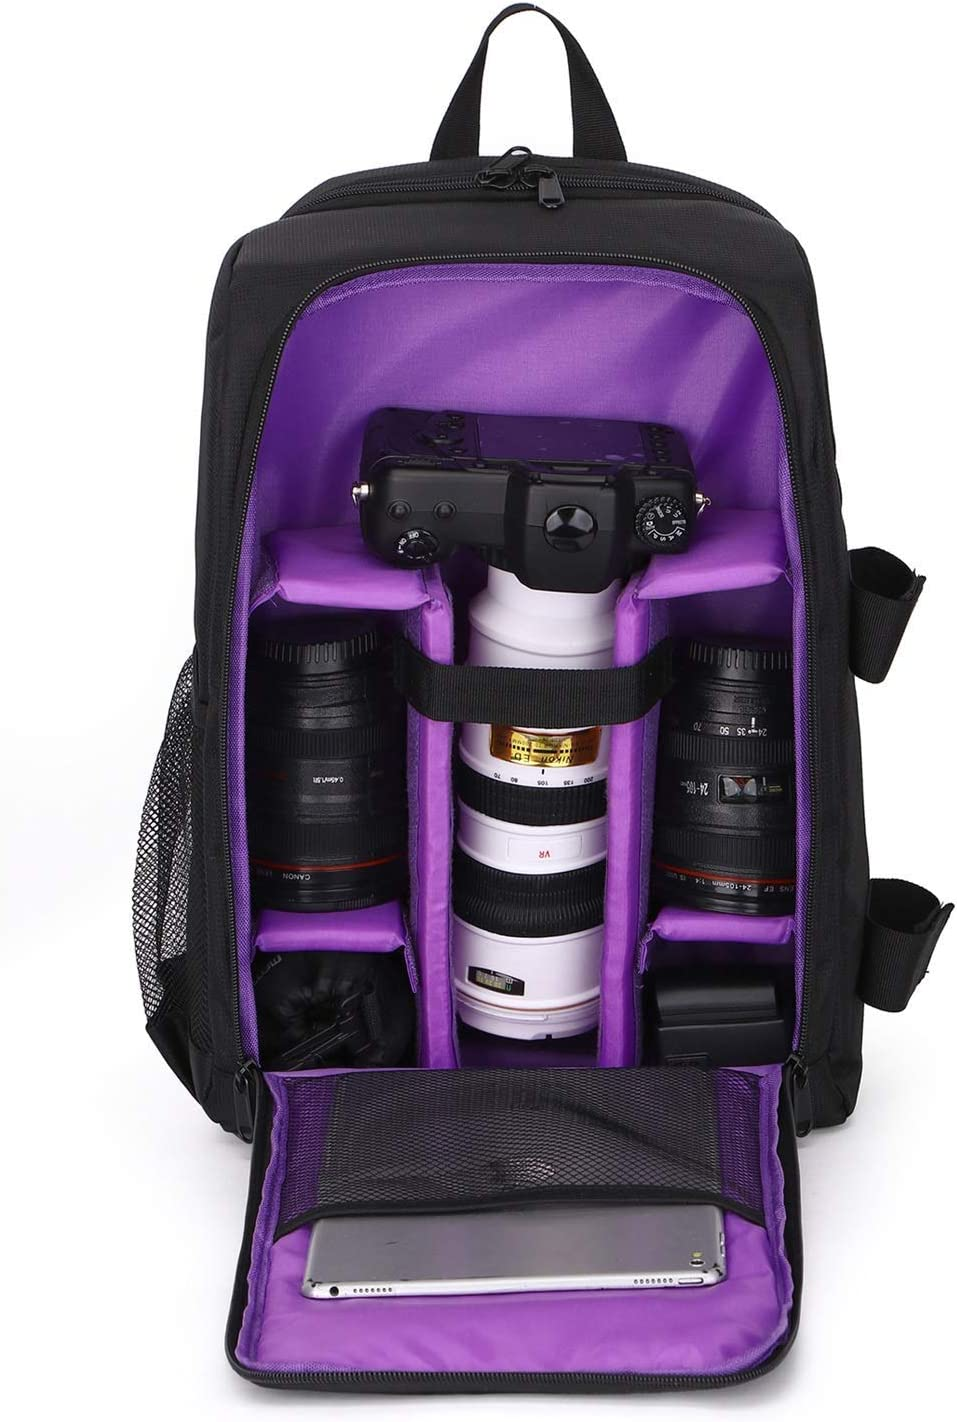 Outdoor Product//Fashion Bag Camera Bag Waterproof SLR Camera Bag Shoulder Outdoor Photography Bag Professional Waterproof Wearable Laptop Bag Lens and Accessories